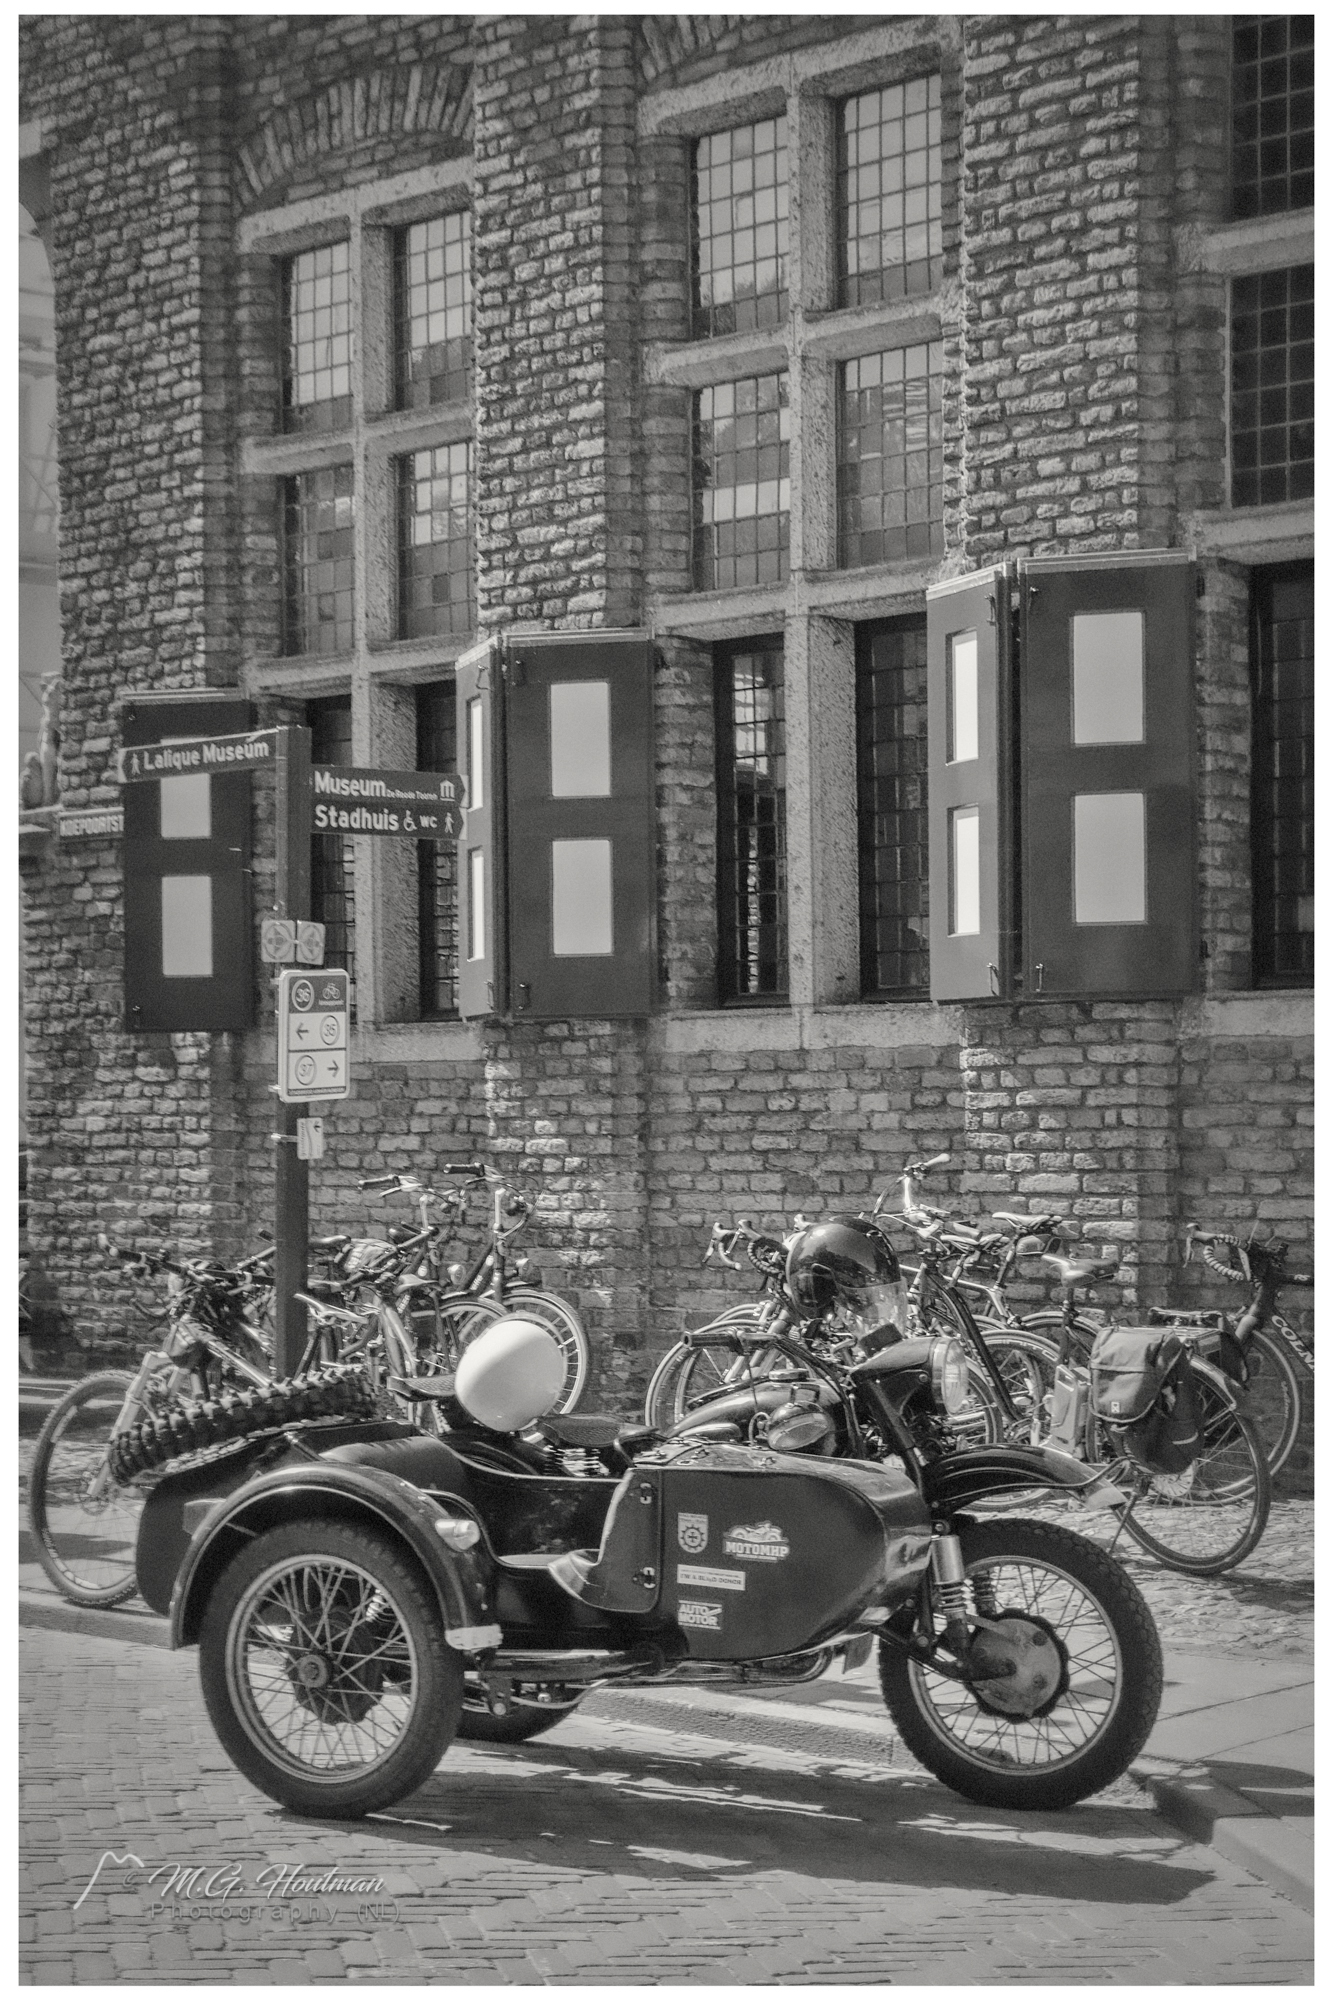 Old motorcycle with side car